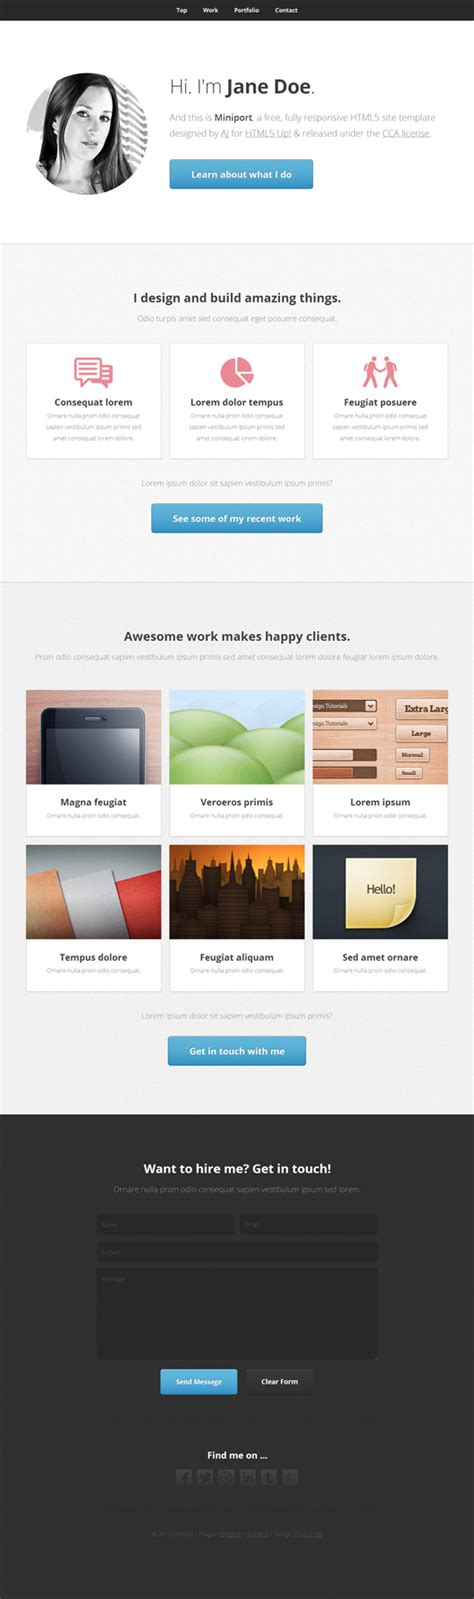 Miniport Free Html5 Css3 Responsive Website Template Html5 Mania Ecommerce Website Templates Free In Html5 Css3